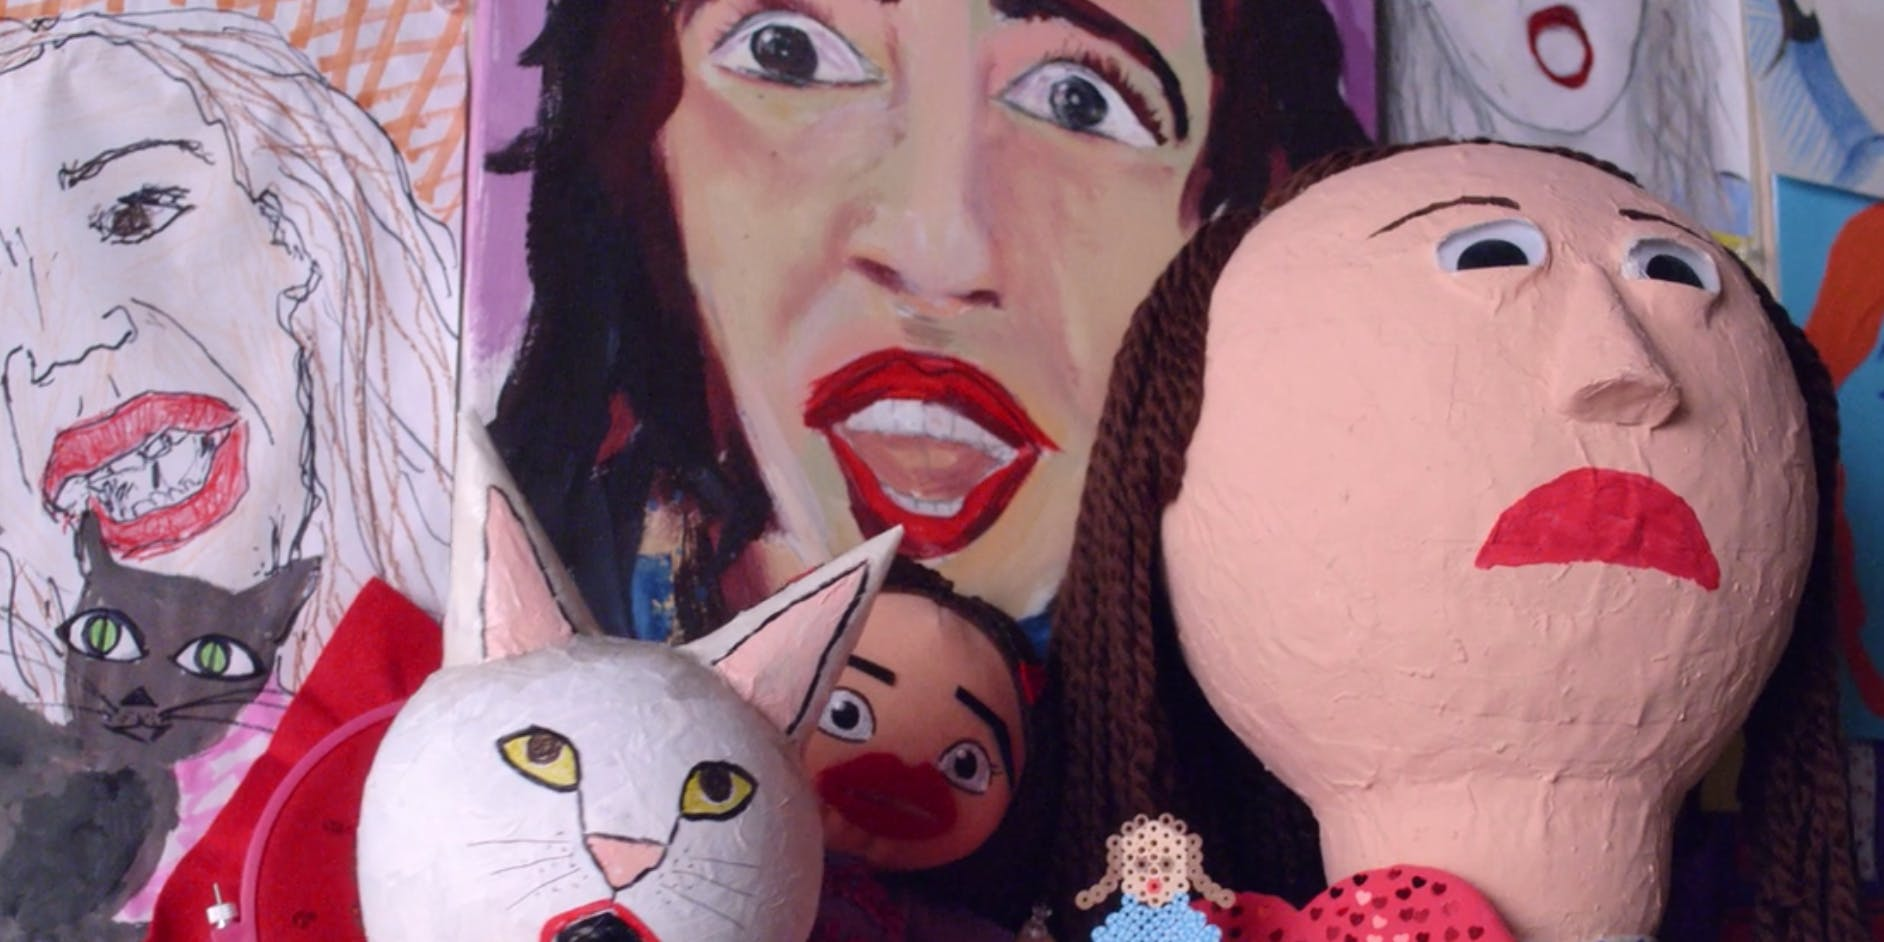 Fan art in the opening of 'Haters Back Off!'